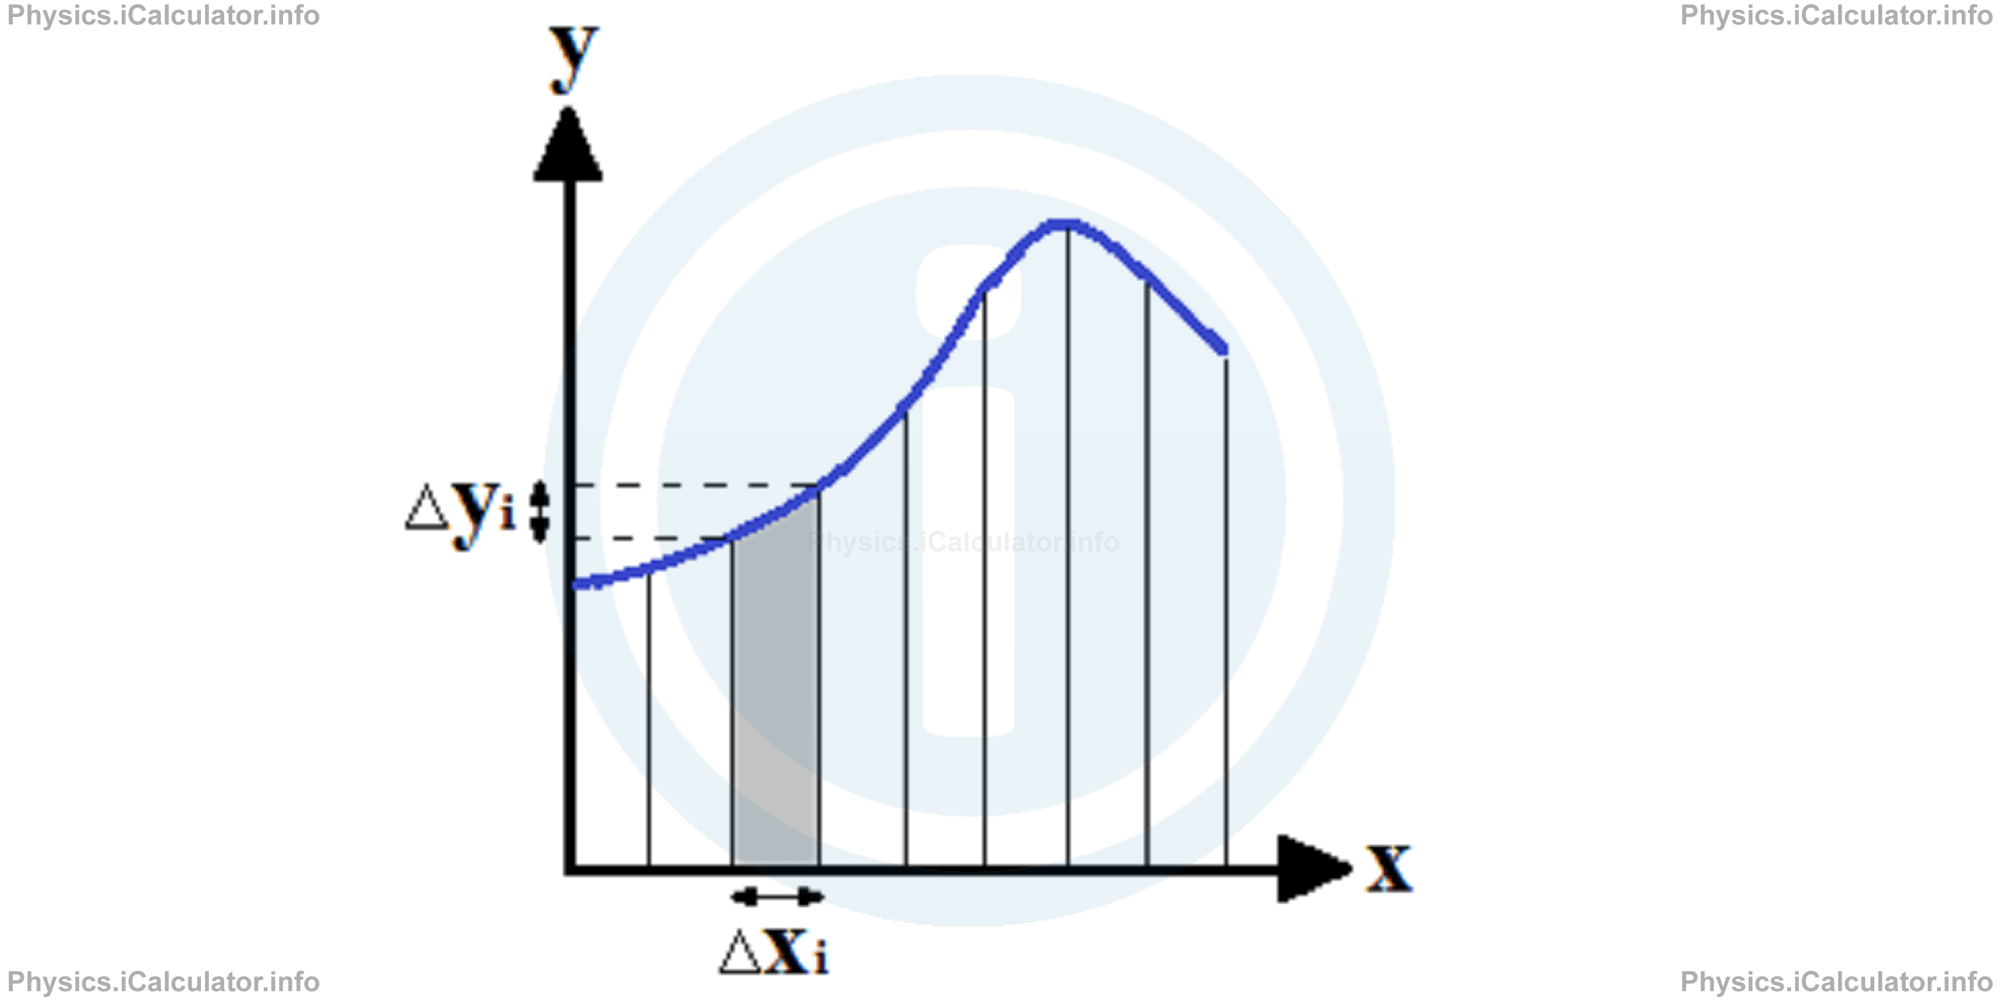 Physics Tutorials: This image provides visual information for the physics tutorial Ampere's Law